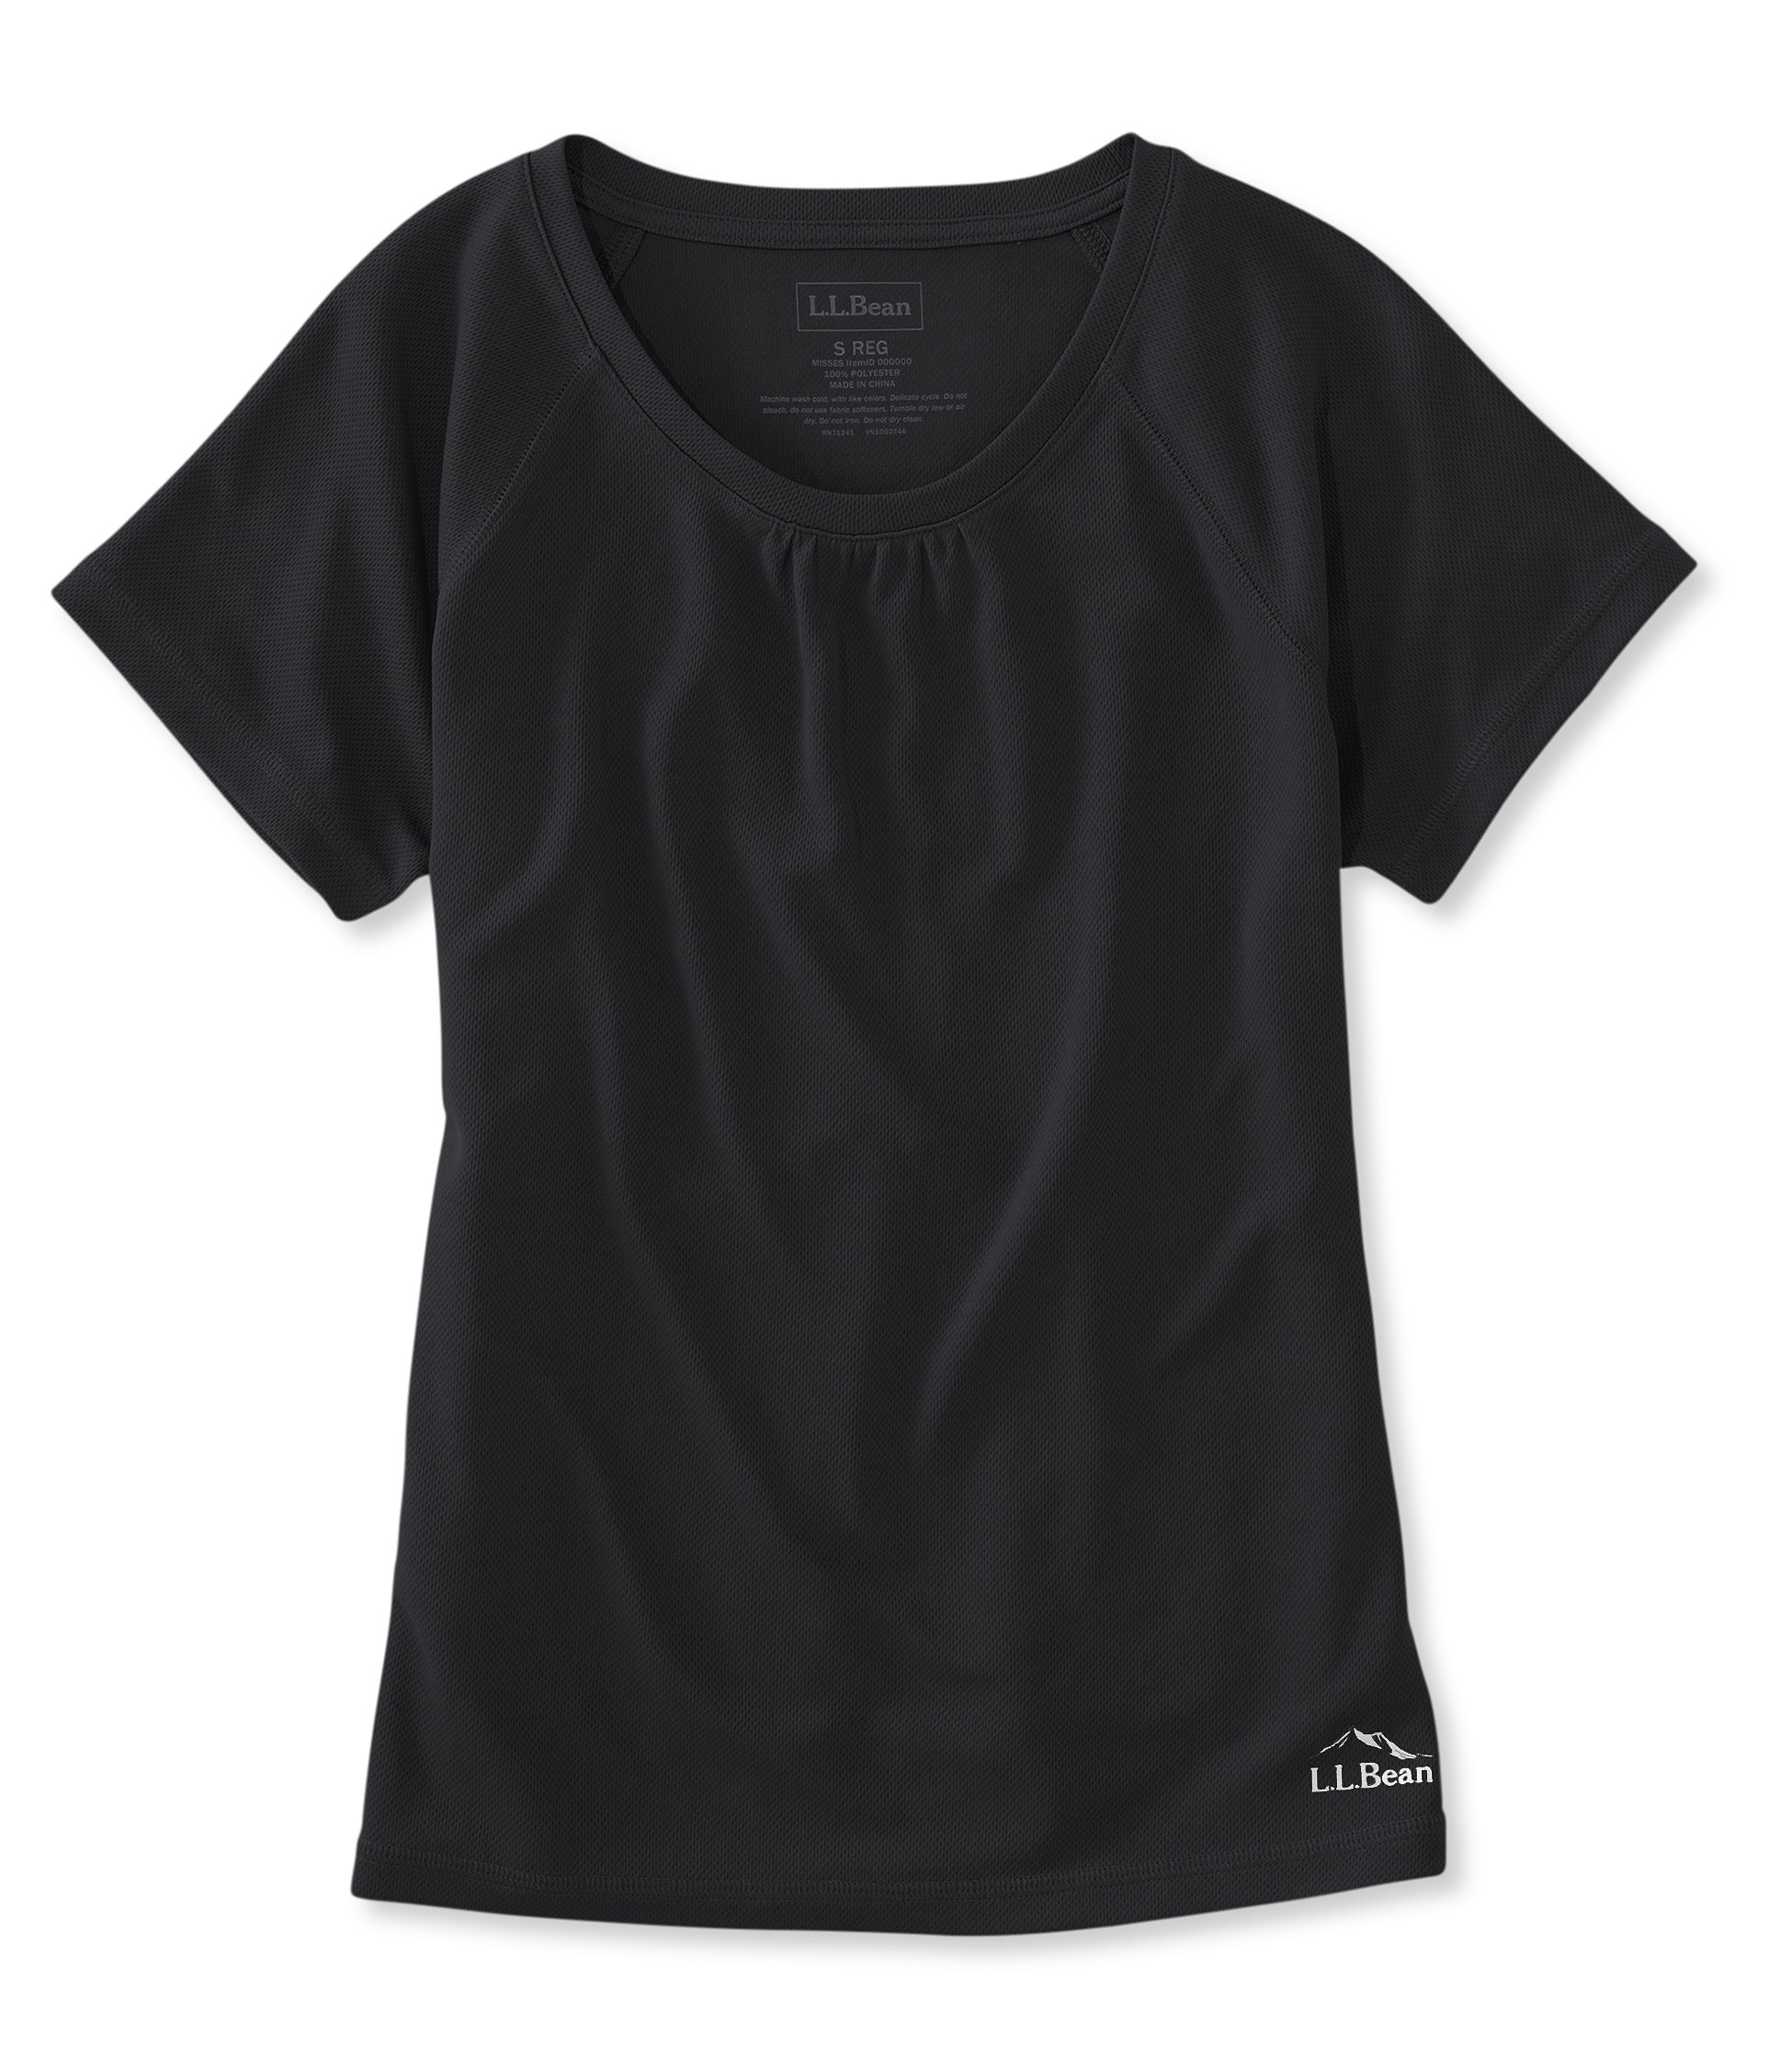 L.L.Bean Beansport Crewneck Tee, Short-Sleeve